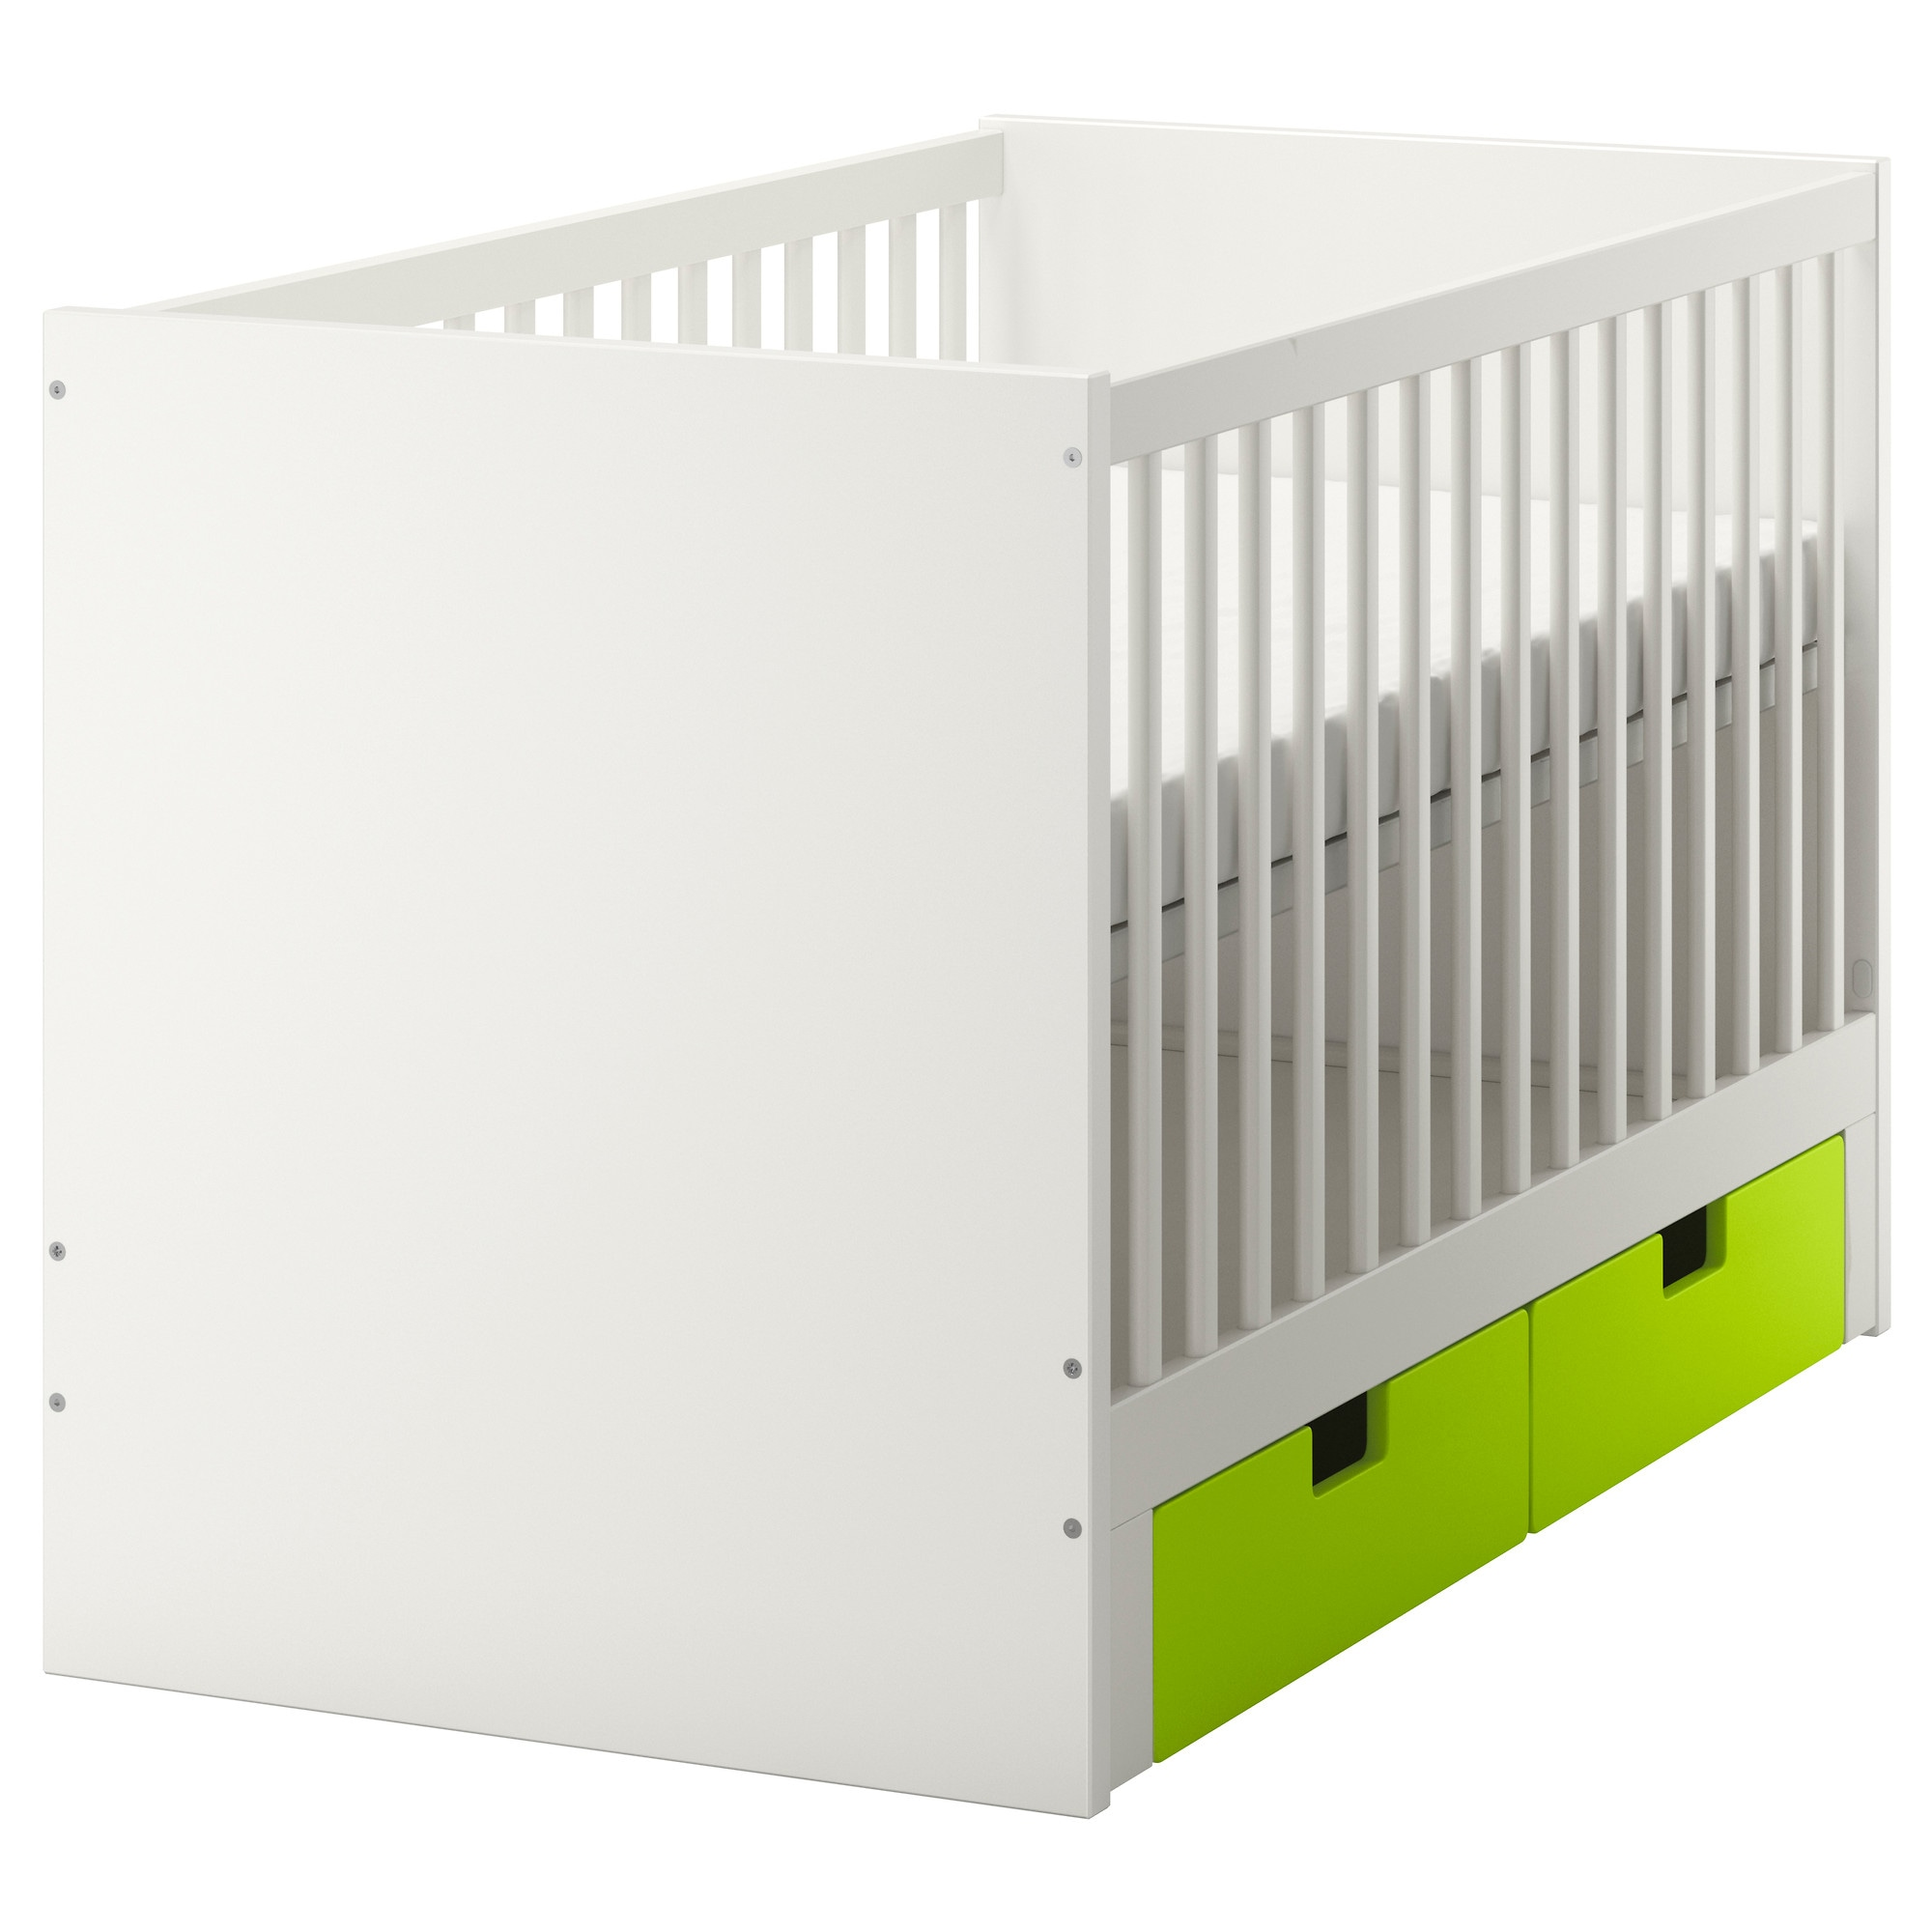 Unfinished crib for sale - Stuva Crib With Drawers Green Length 54 3 4 Width 29